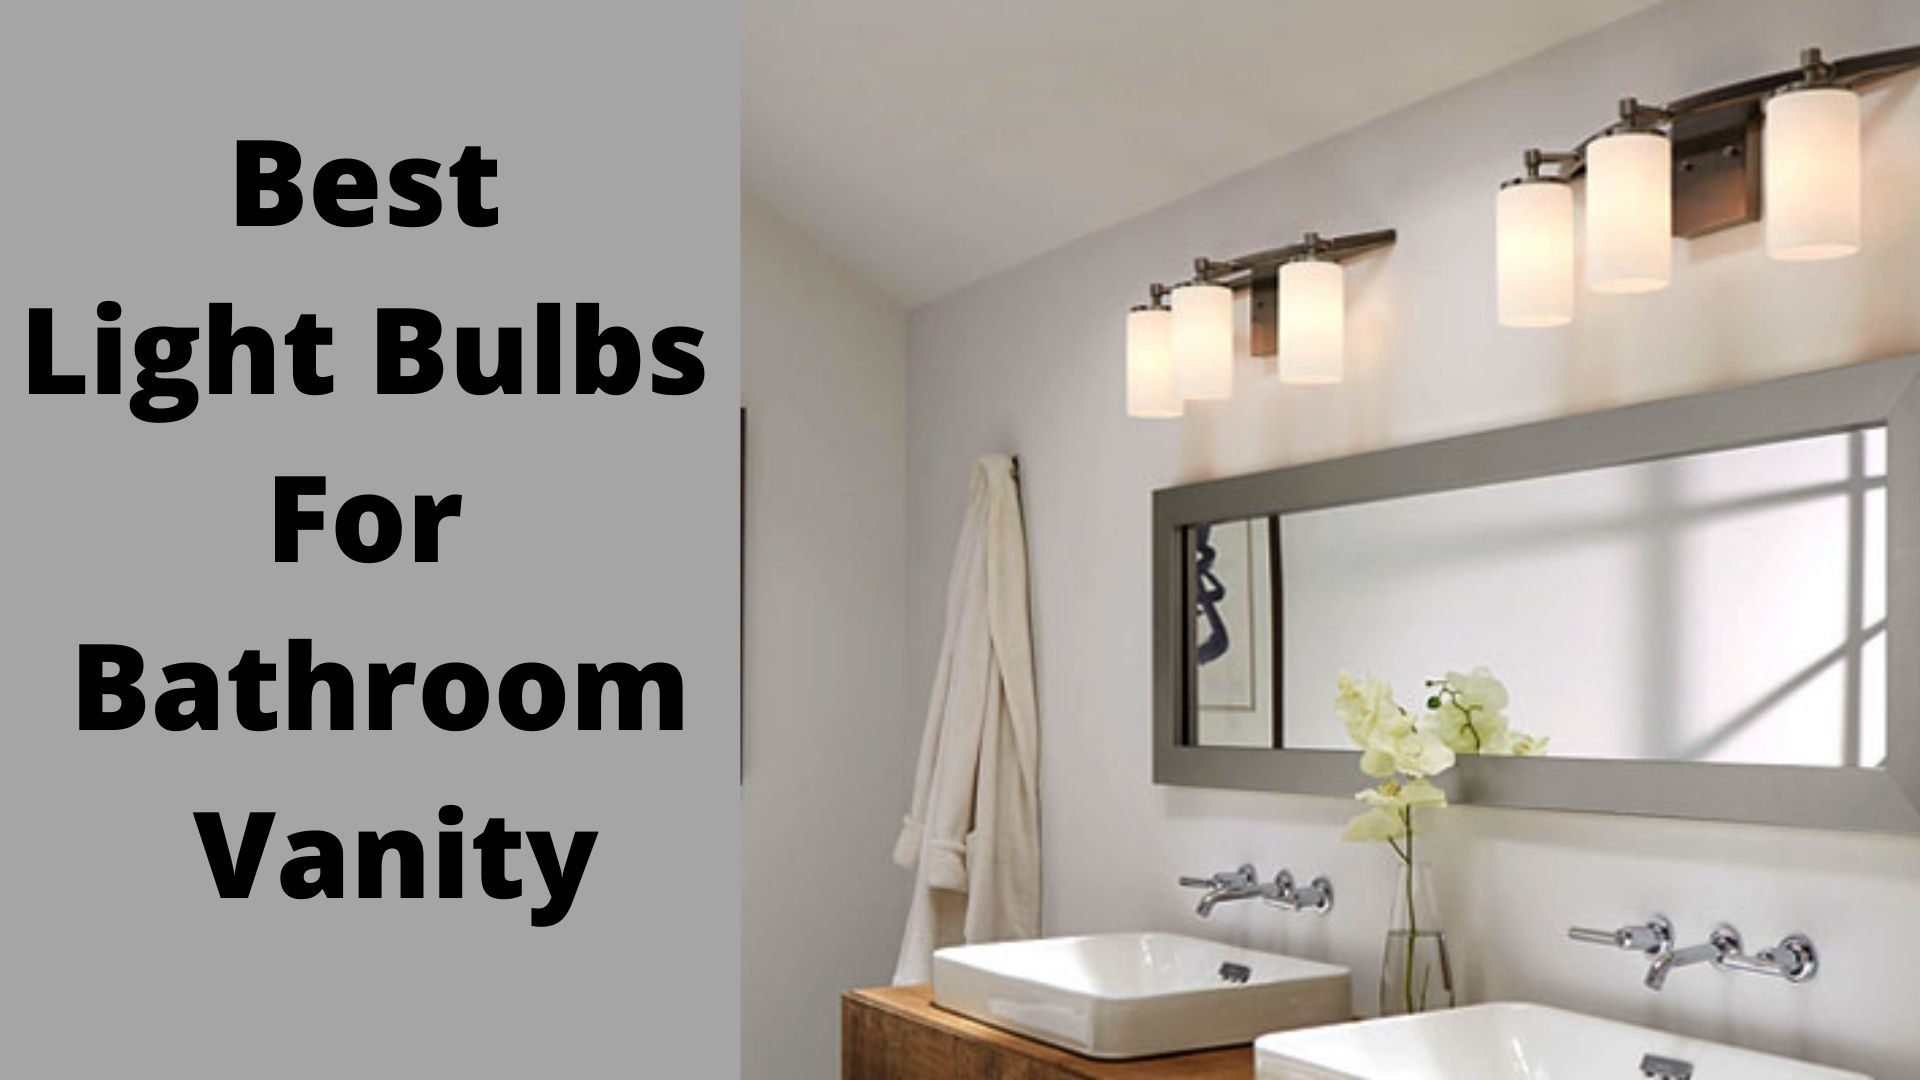 Best Light Bulbs For Bathroom Vanity